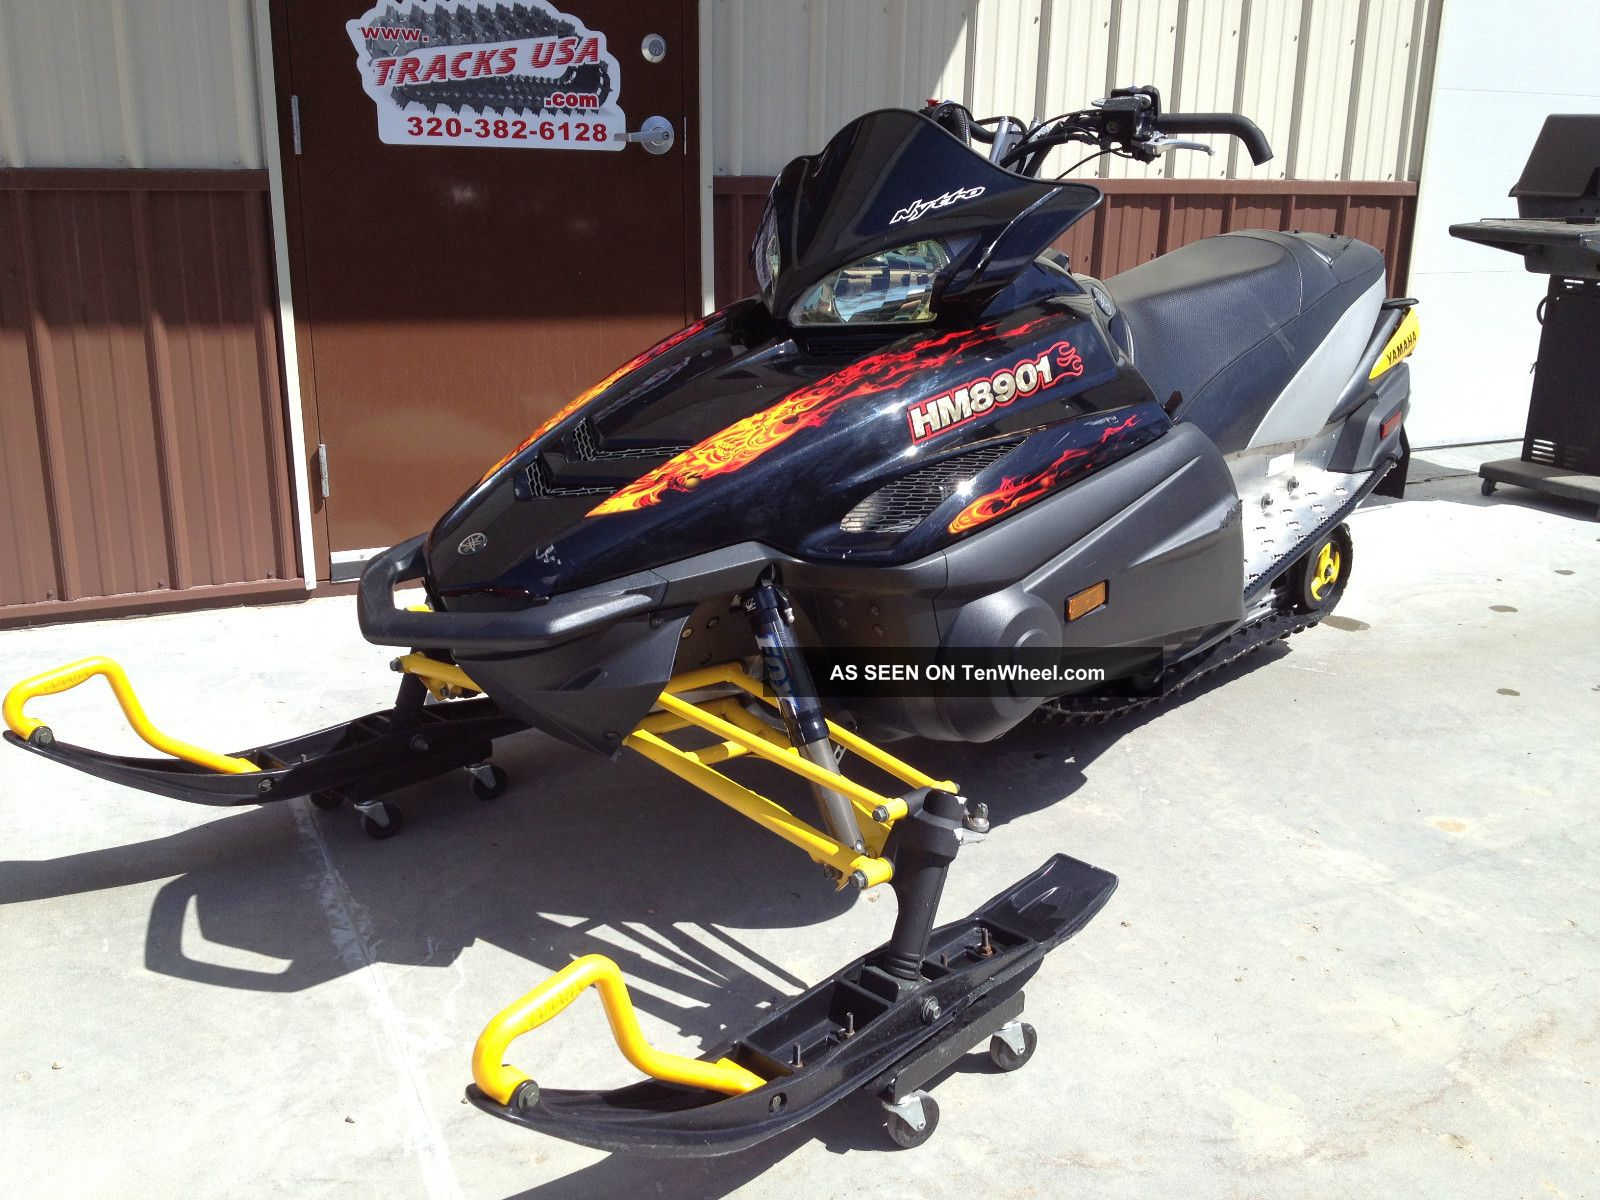 2006 Yamaha Nytro Snowmobile Yamaha photo